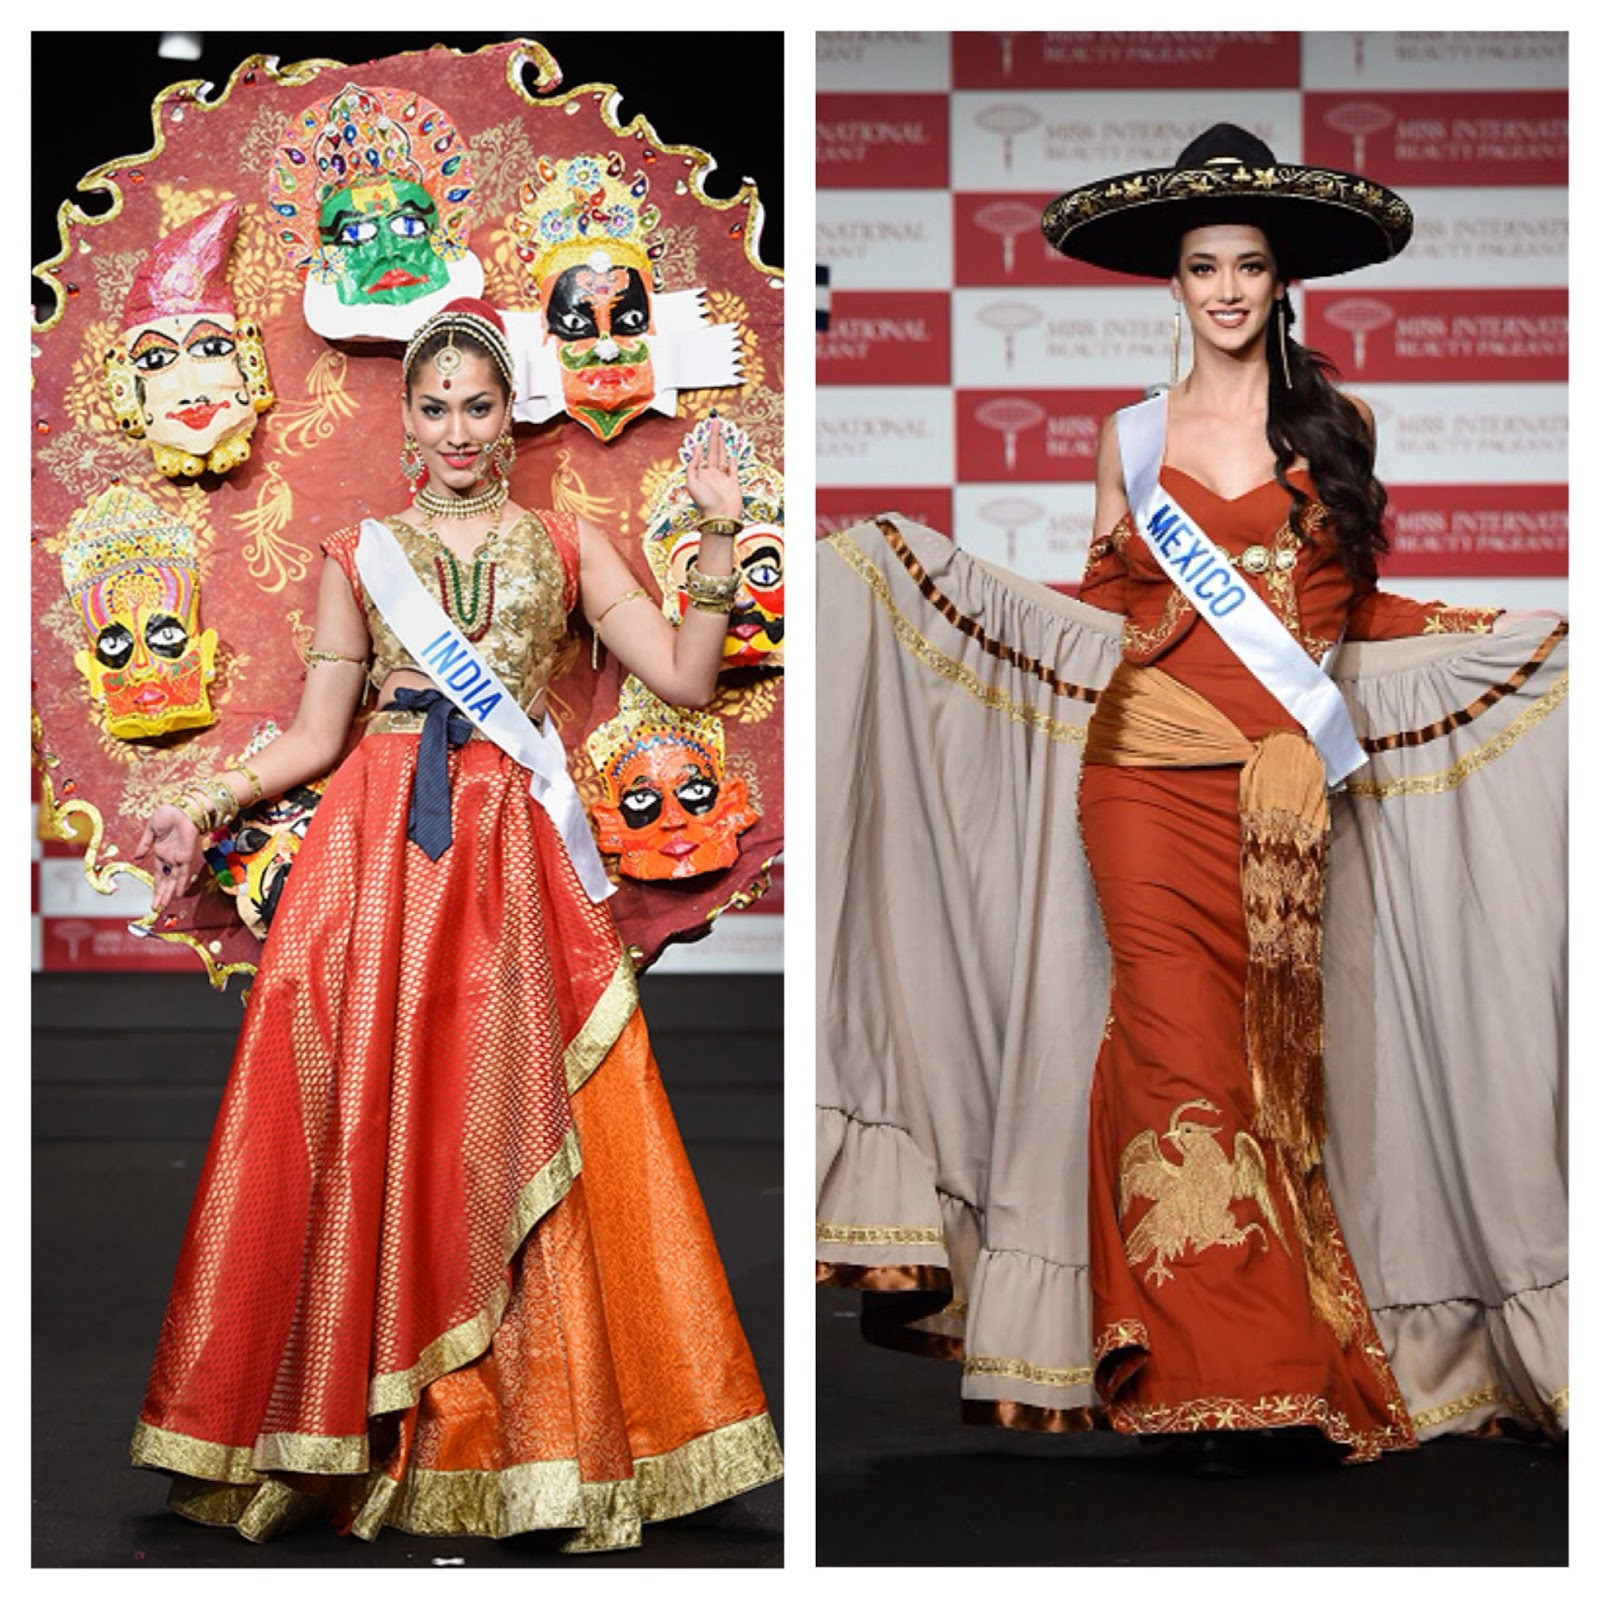 sashes and tiaras miss international 2014 national costume show